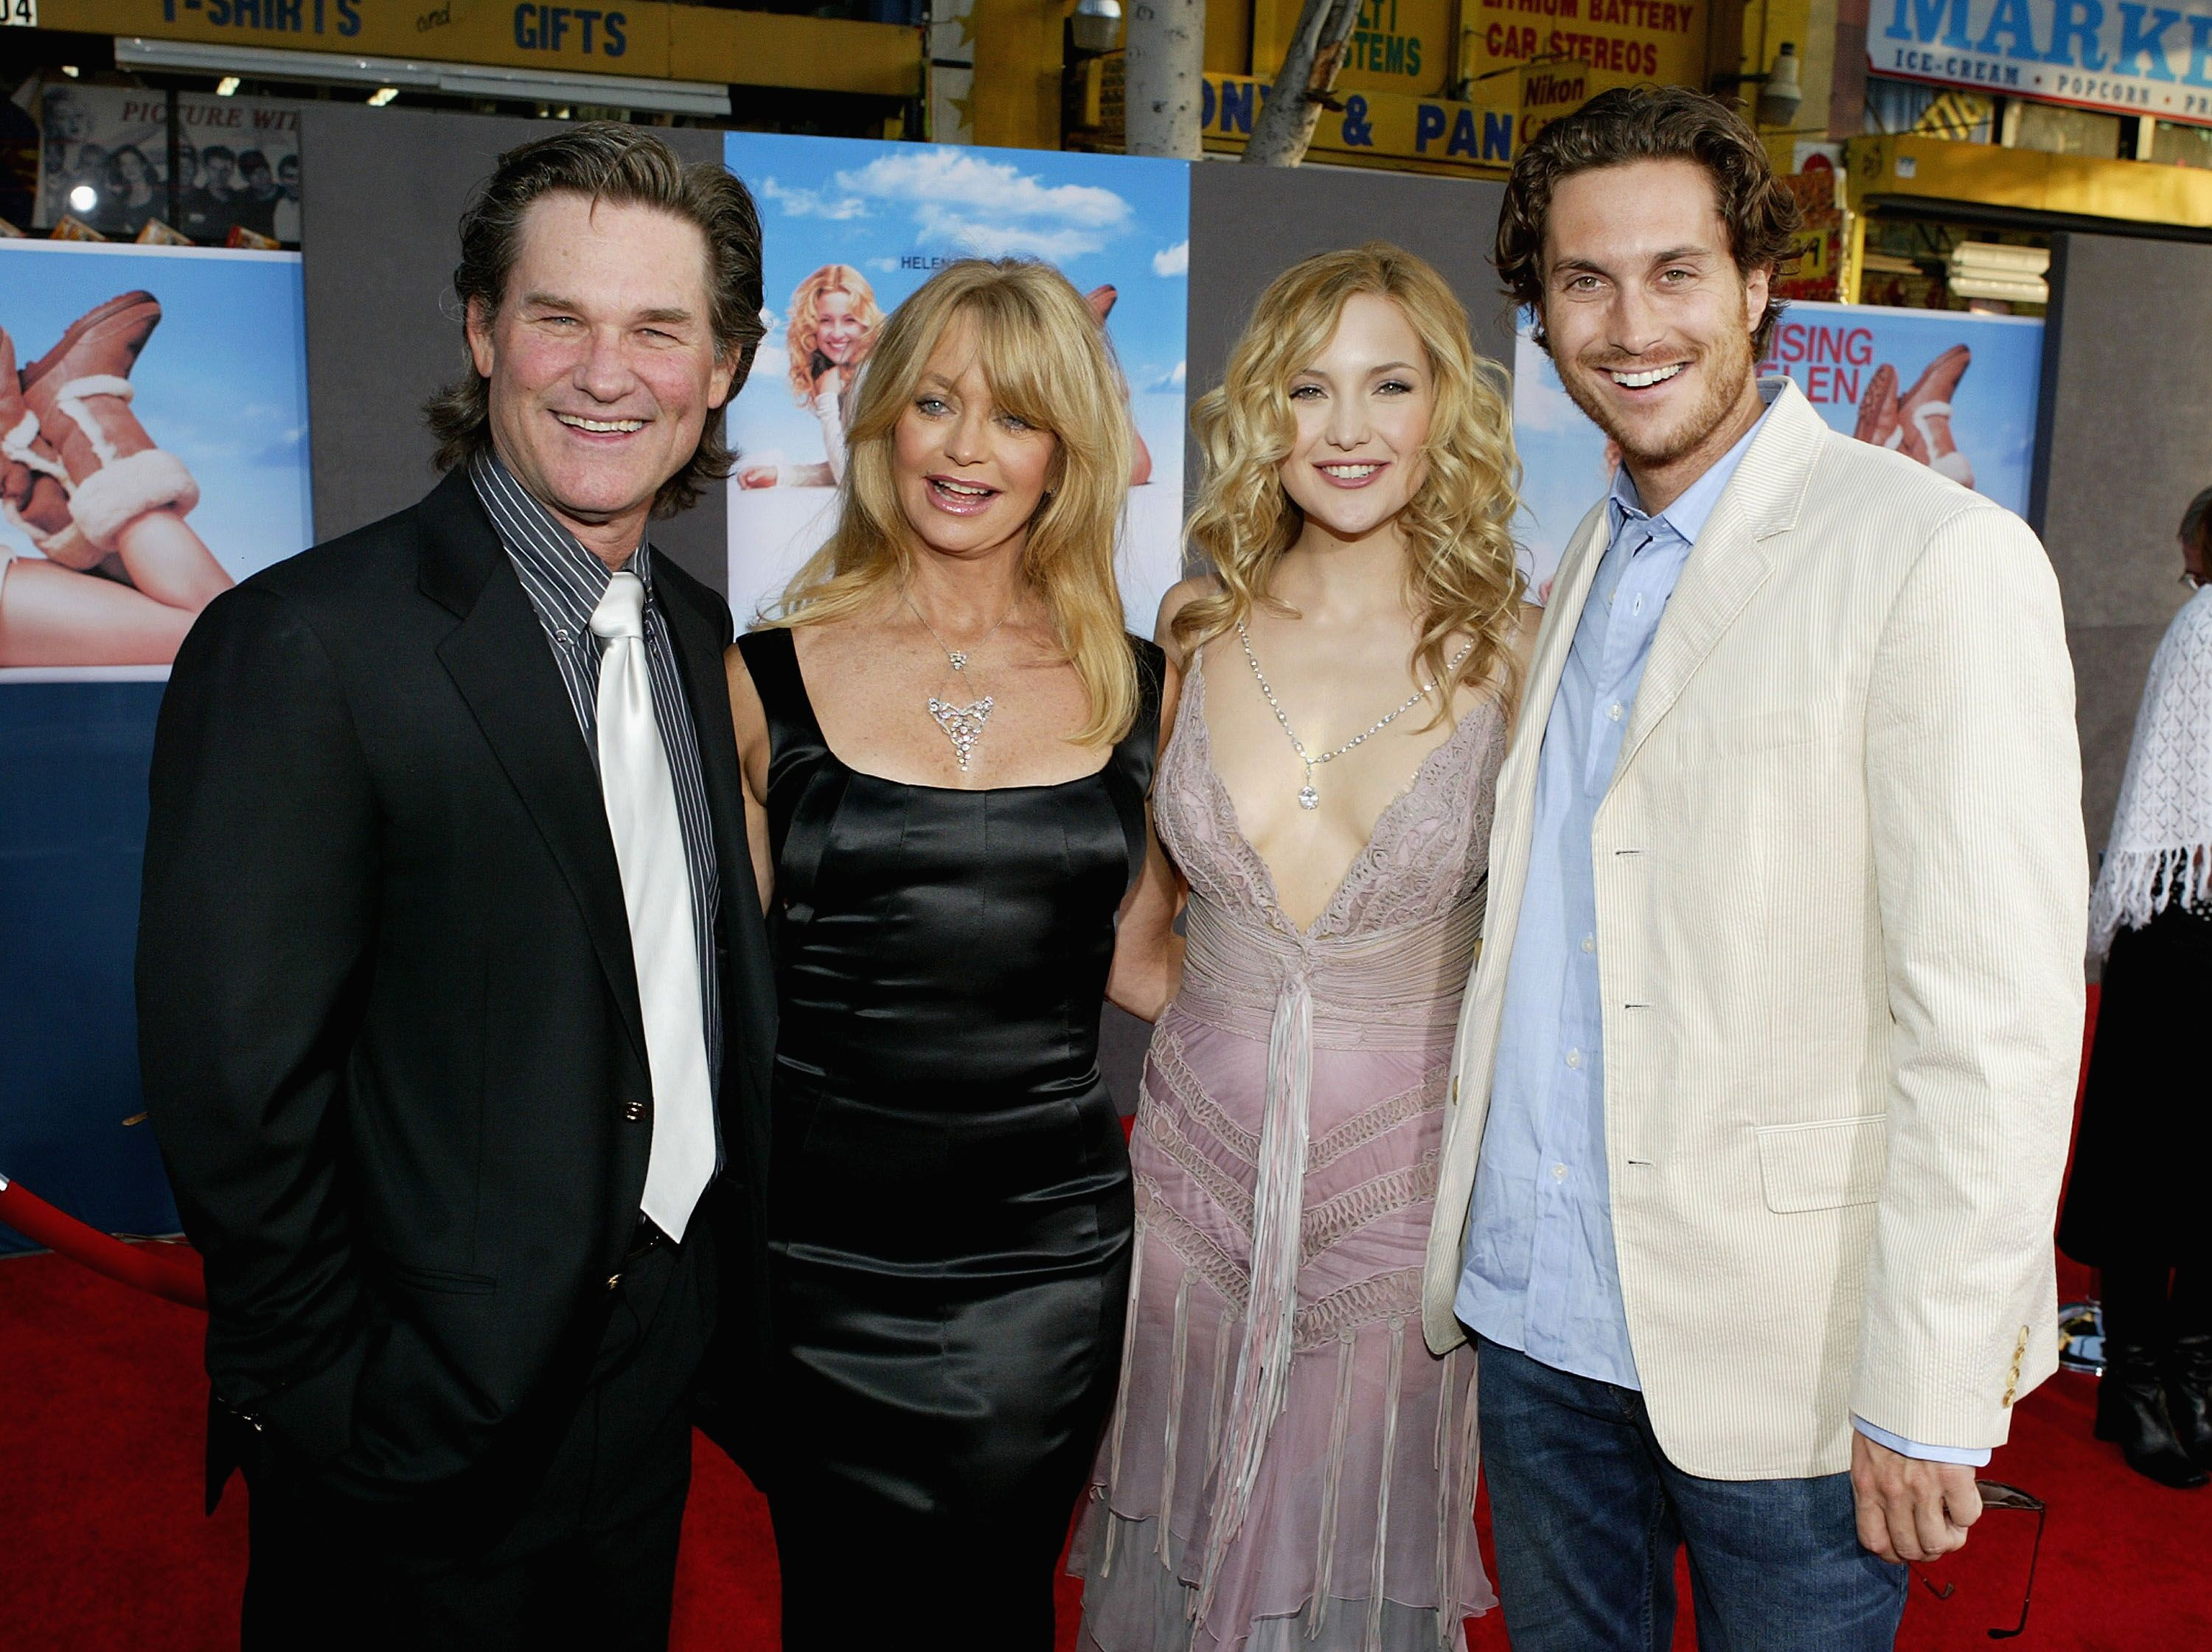 """Kurt Russell, his partner, actress Goldie Hawn, and her children, actress Kate Hudson and actor Oliver Hudson, attend the film premiere of the romantic comedy """"Raising Helen."""" 